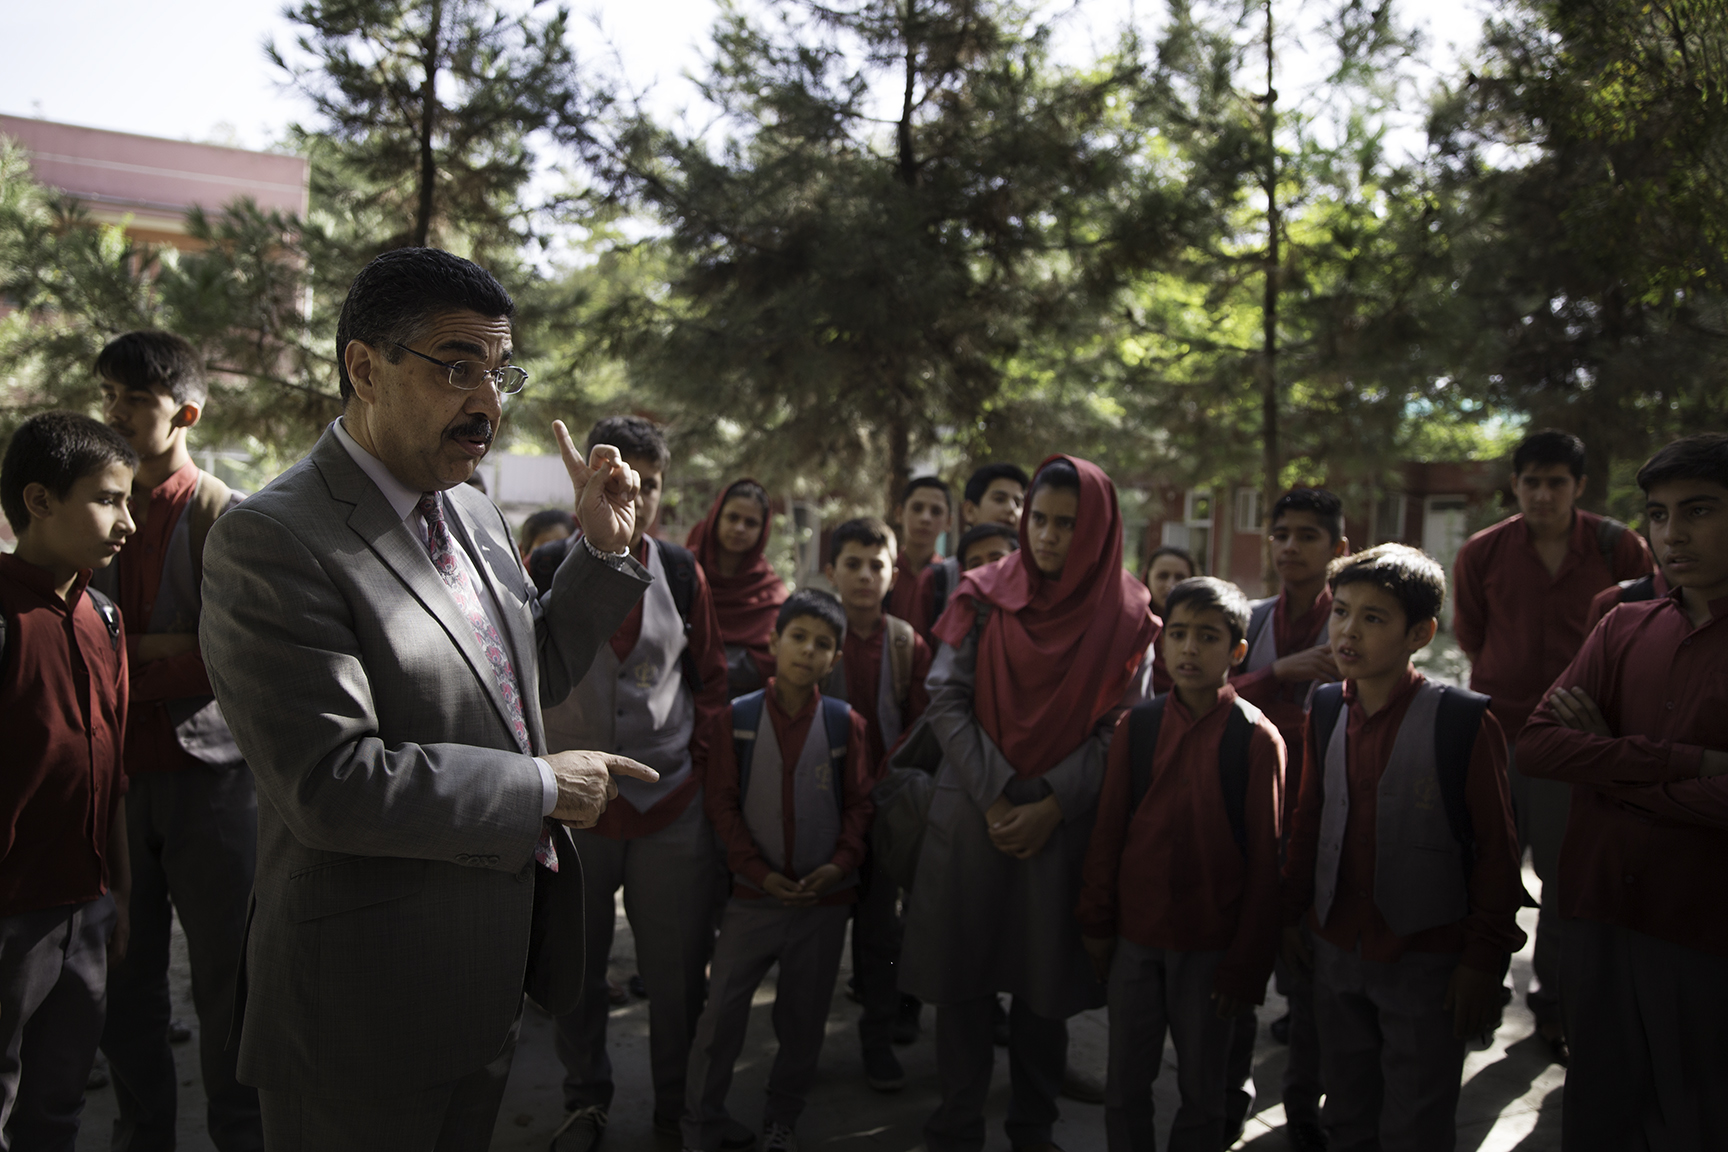 Dr. Ahmad Sarmast (left), Director of the Afghan National Institute of Music, warns students to take security precautions in the wake of a suicide attack in the downtown area of Kabul.